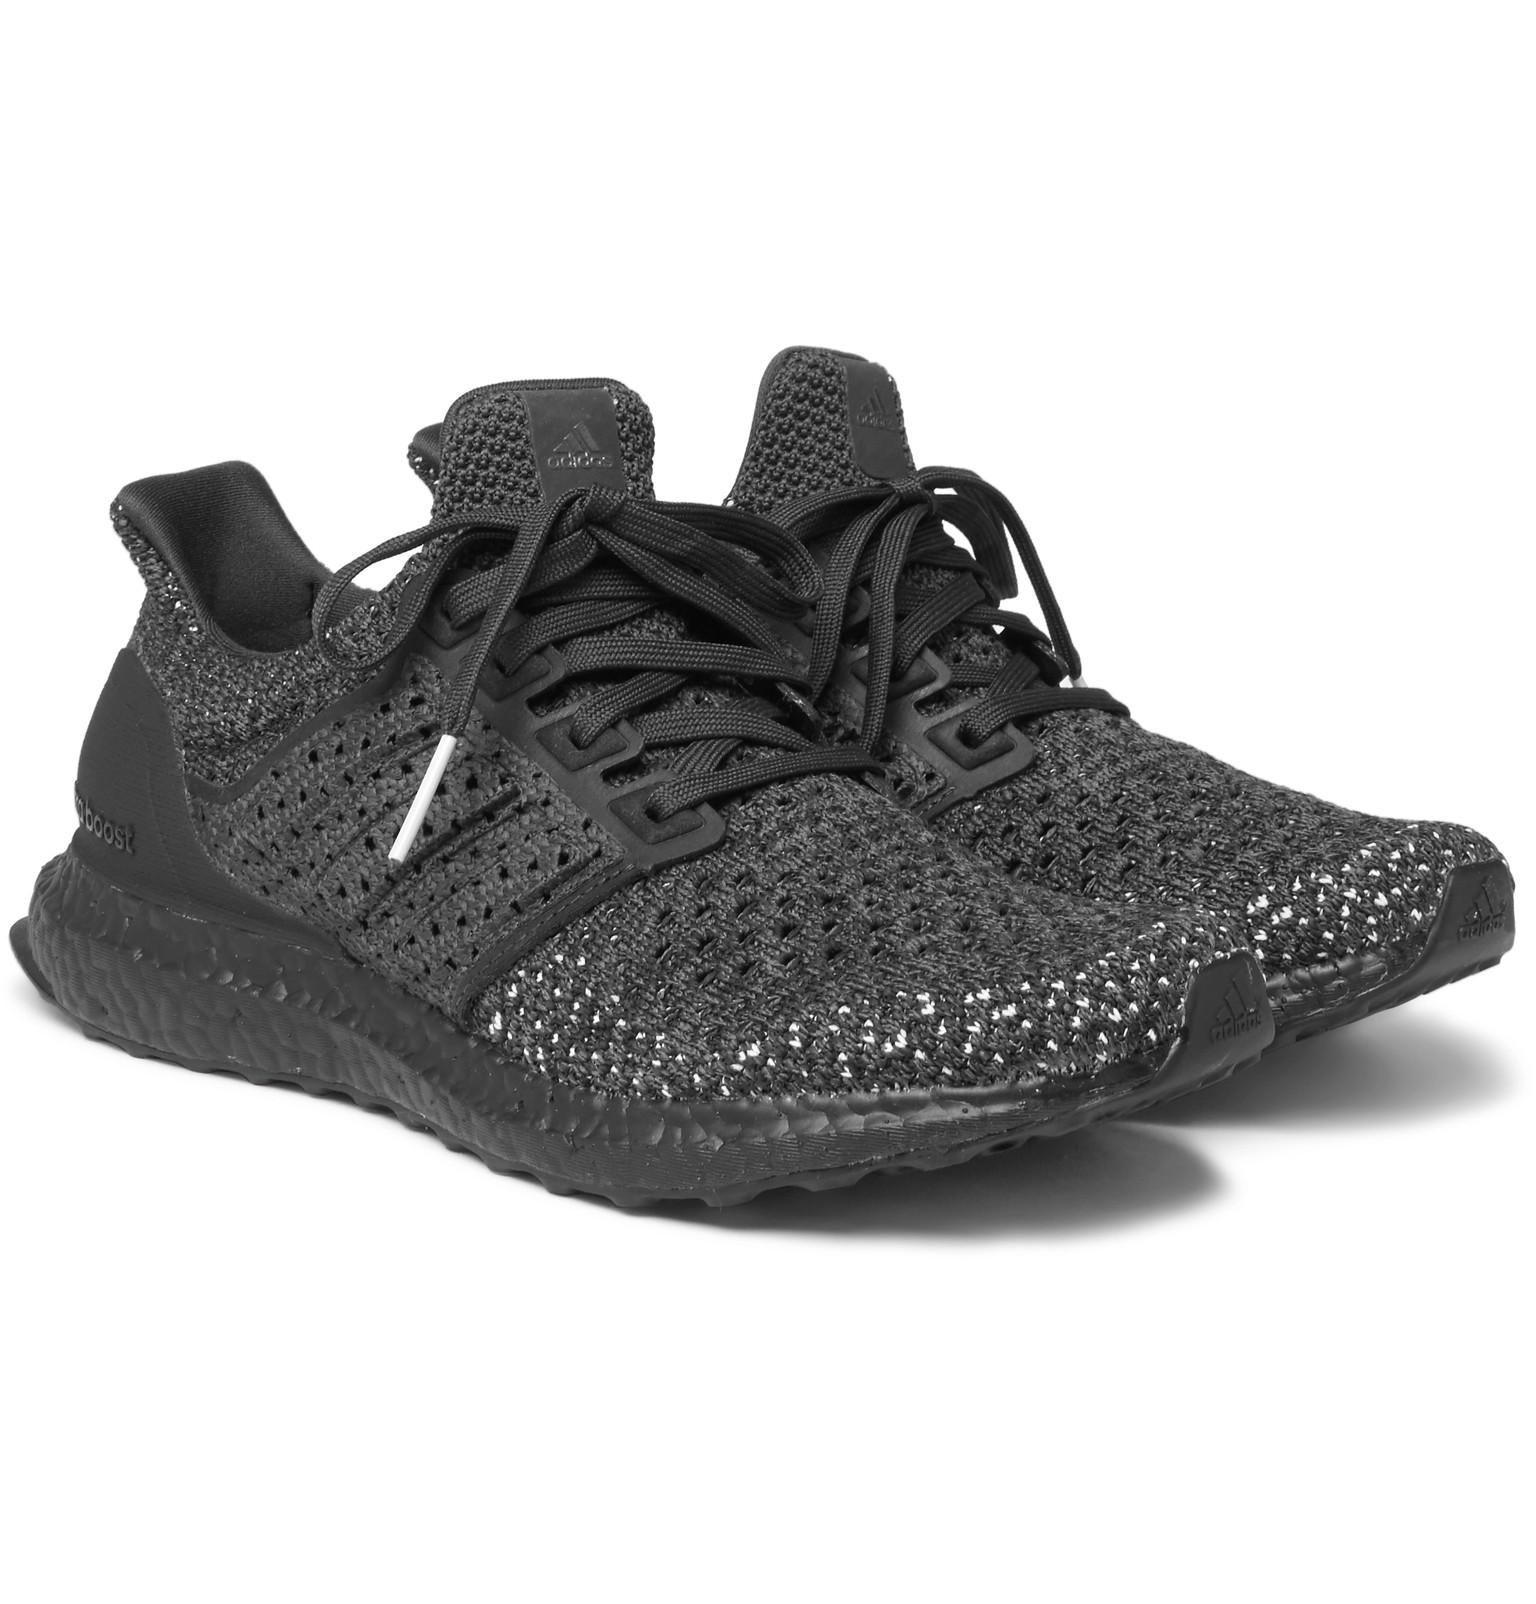 on sale a1eb4 10c84 adidas Originals Ultraboost Clima Primeknit Sneakers for Men - Lyst